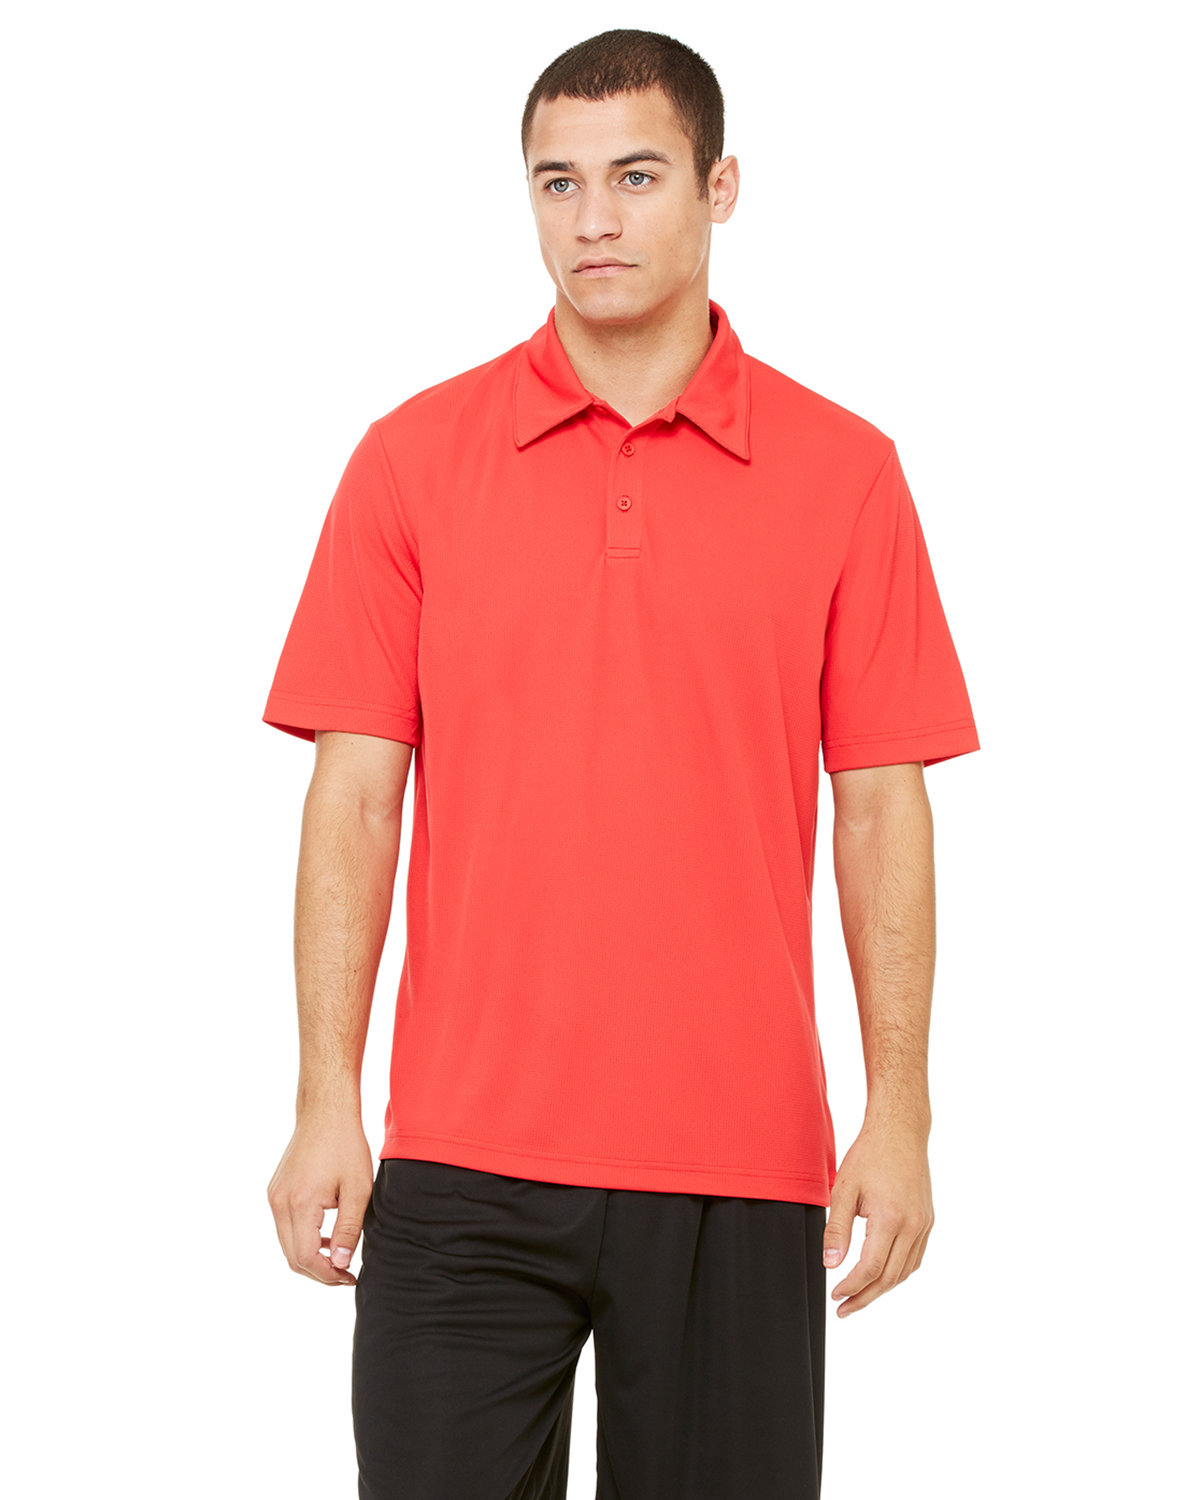 All Sport Unisex Performance Three-Button Mesh Polo SPORT RED